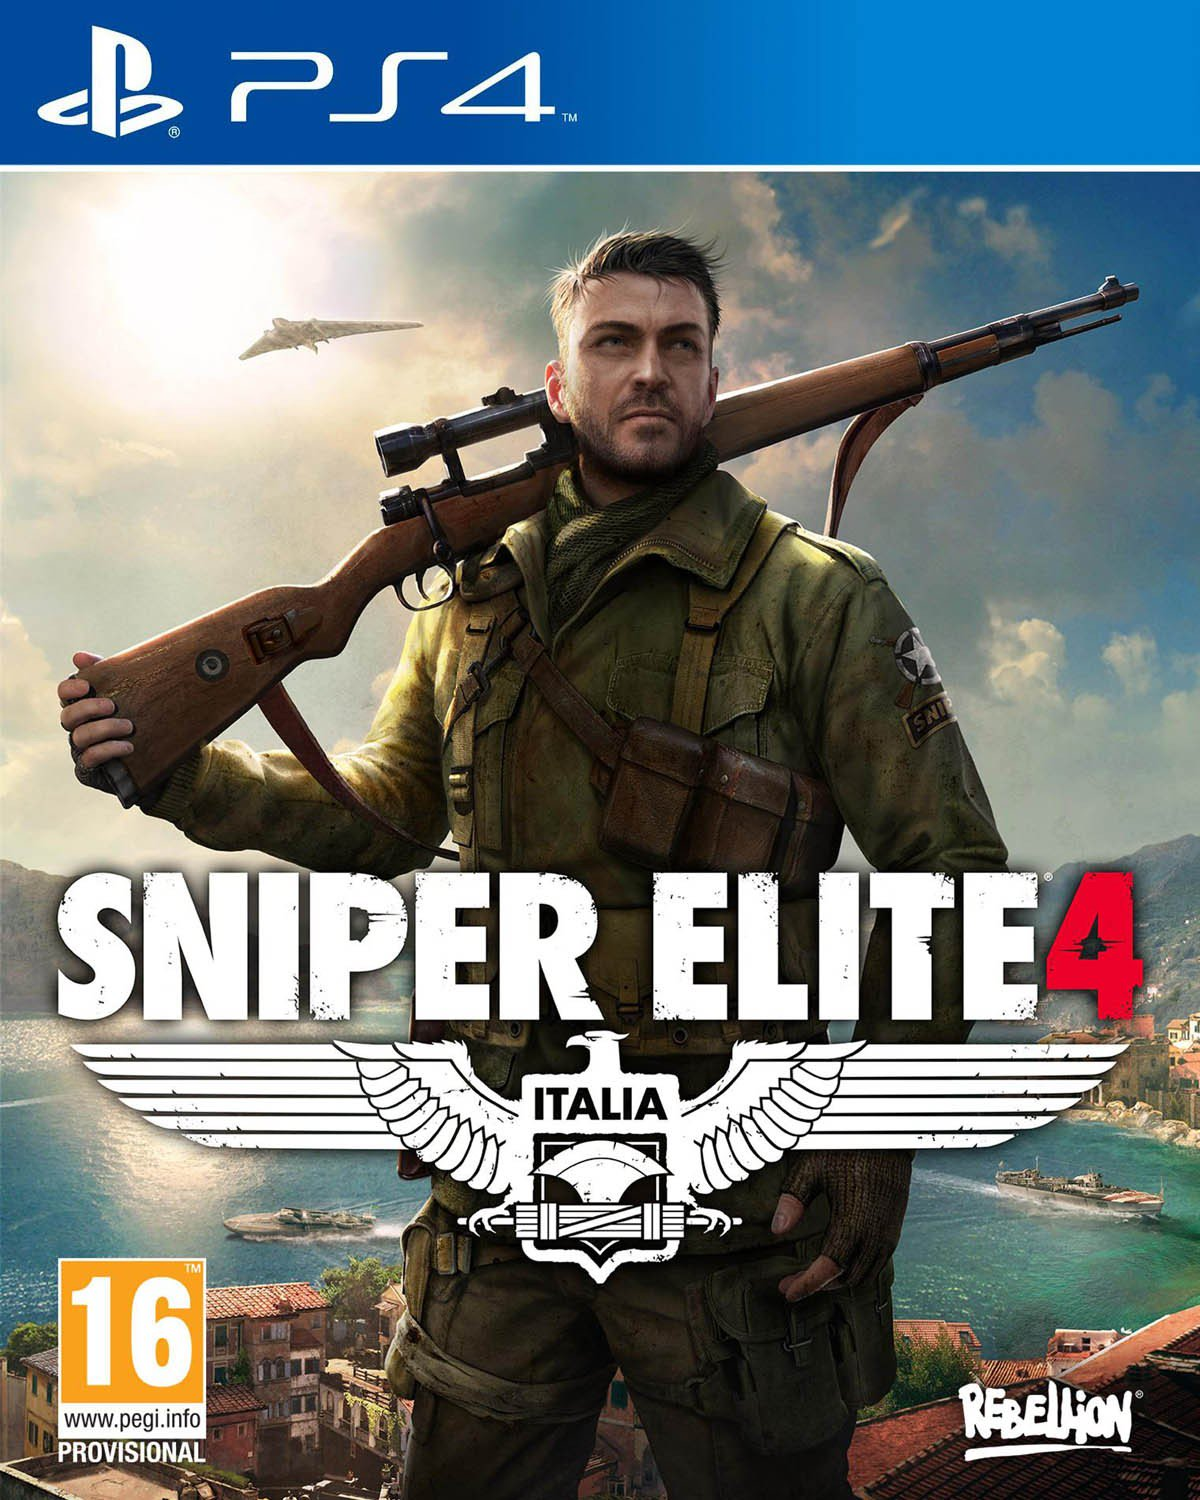 PS4 Sniper Elite 4 sniper elite 3 ultimate edition ps4